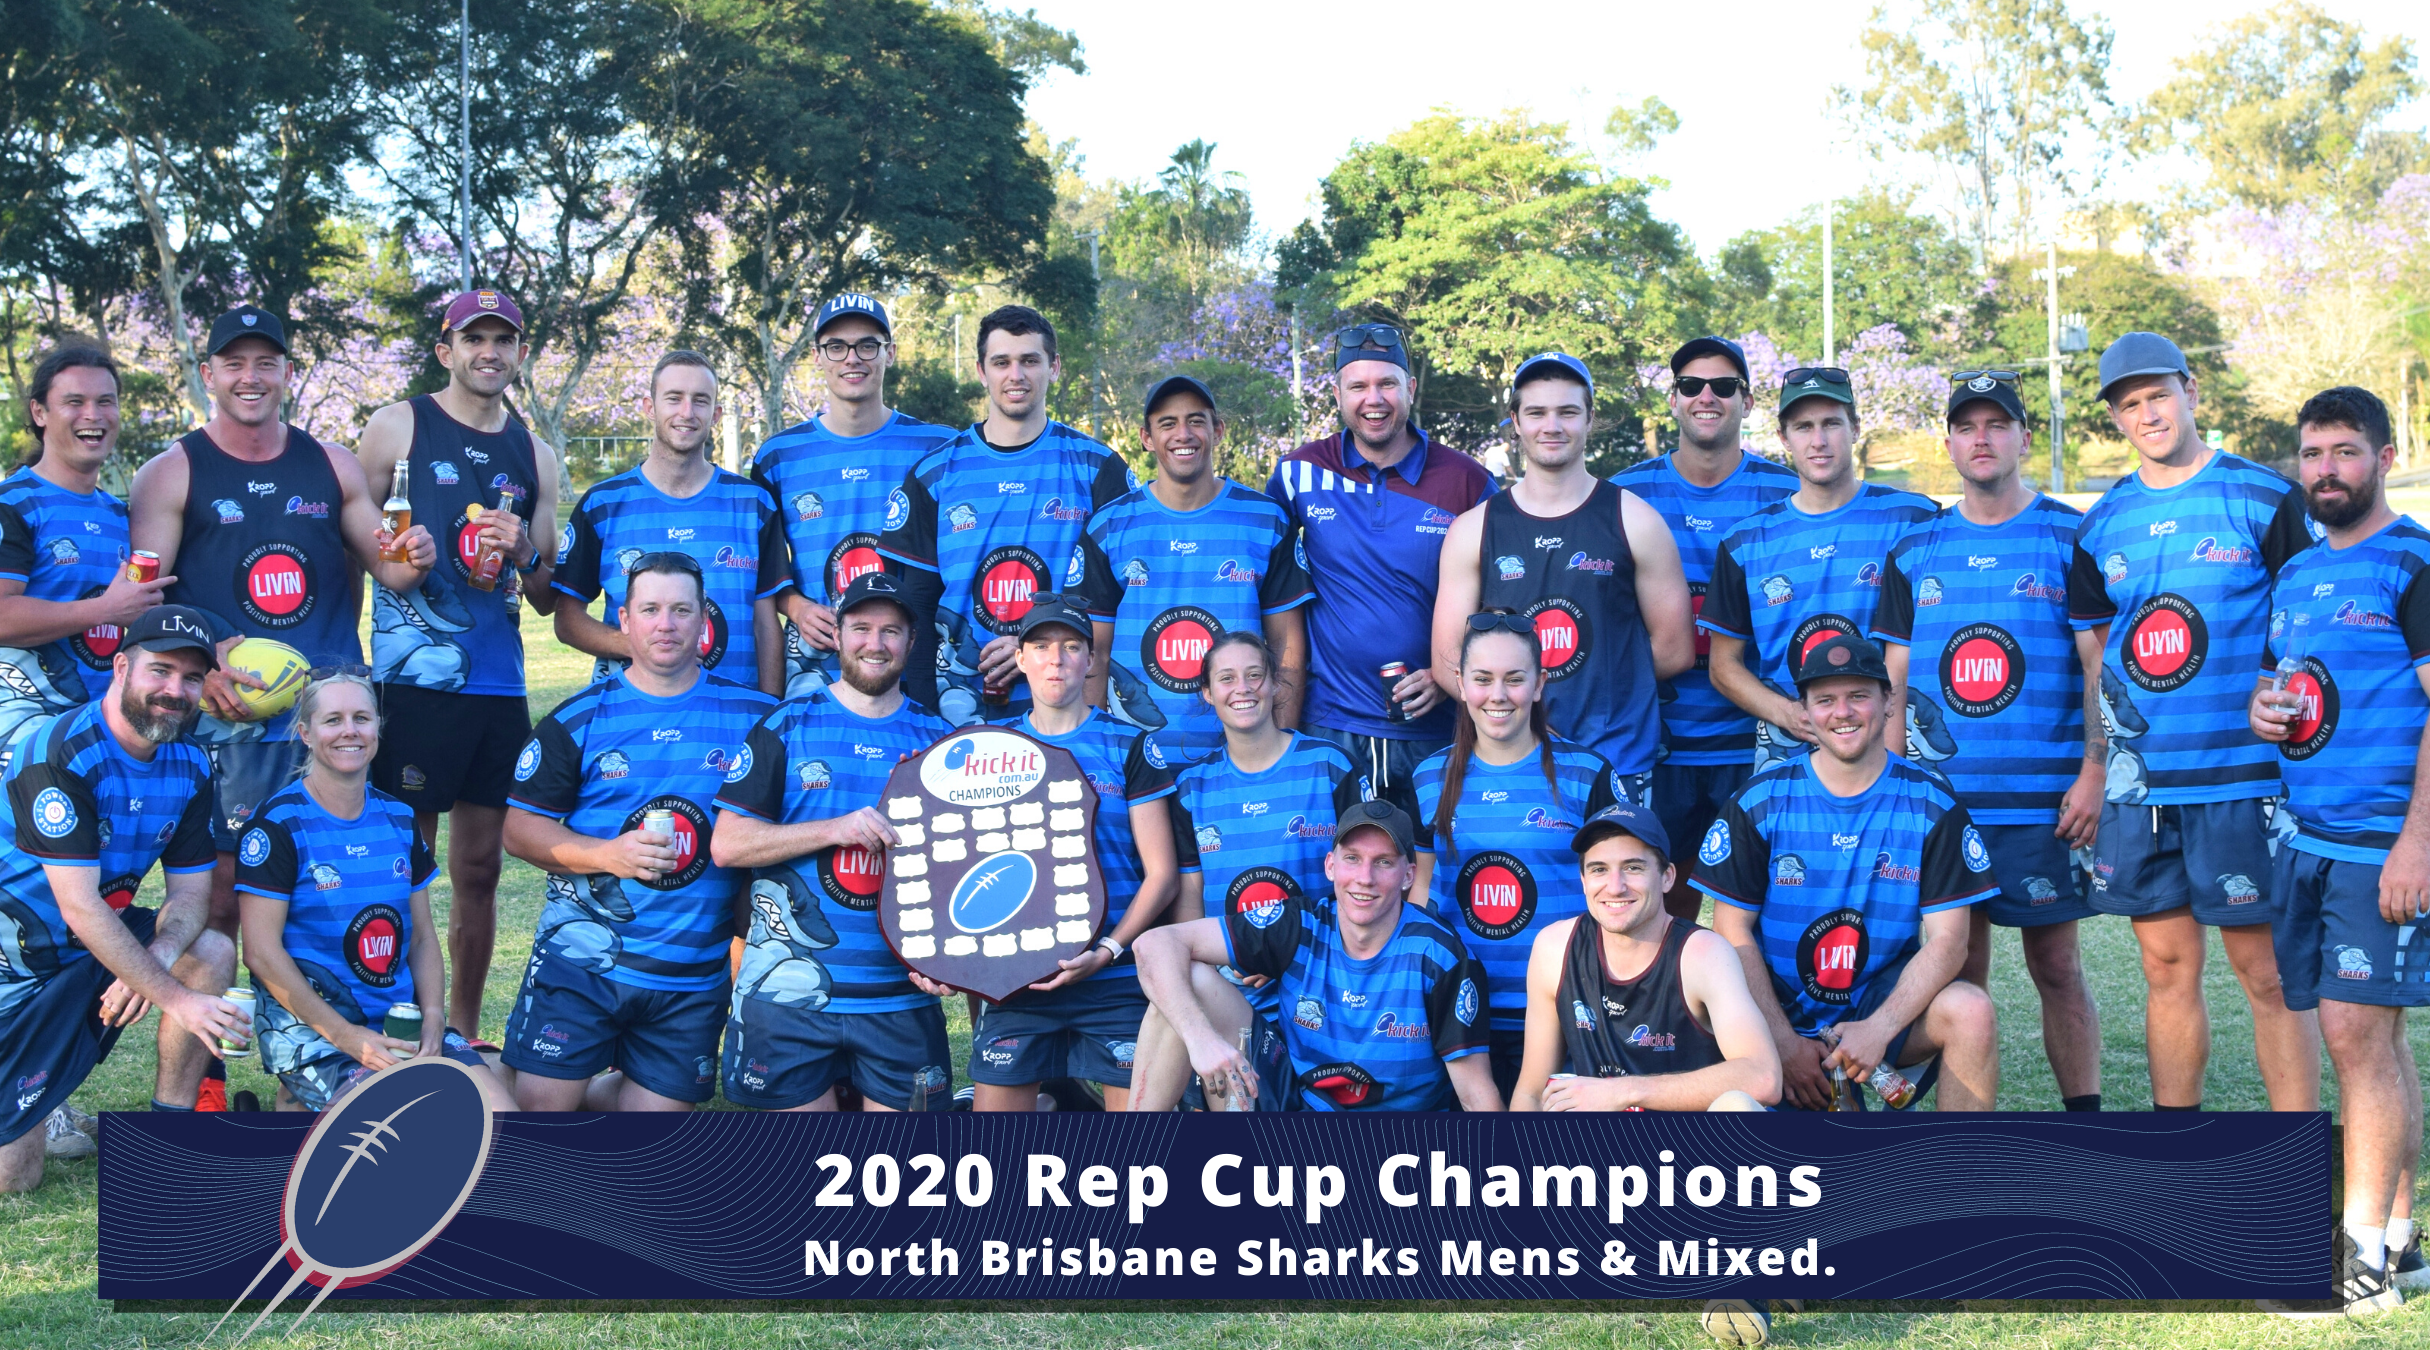 2020 REP CUP - NORTH BRISBANE SHARKS